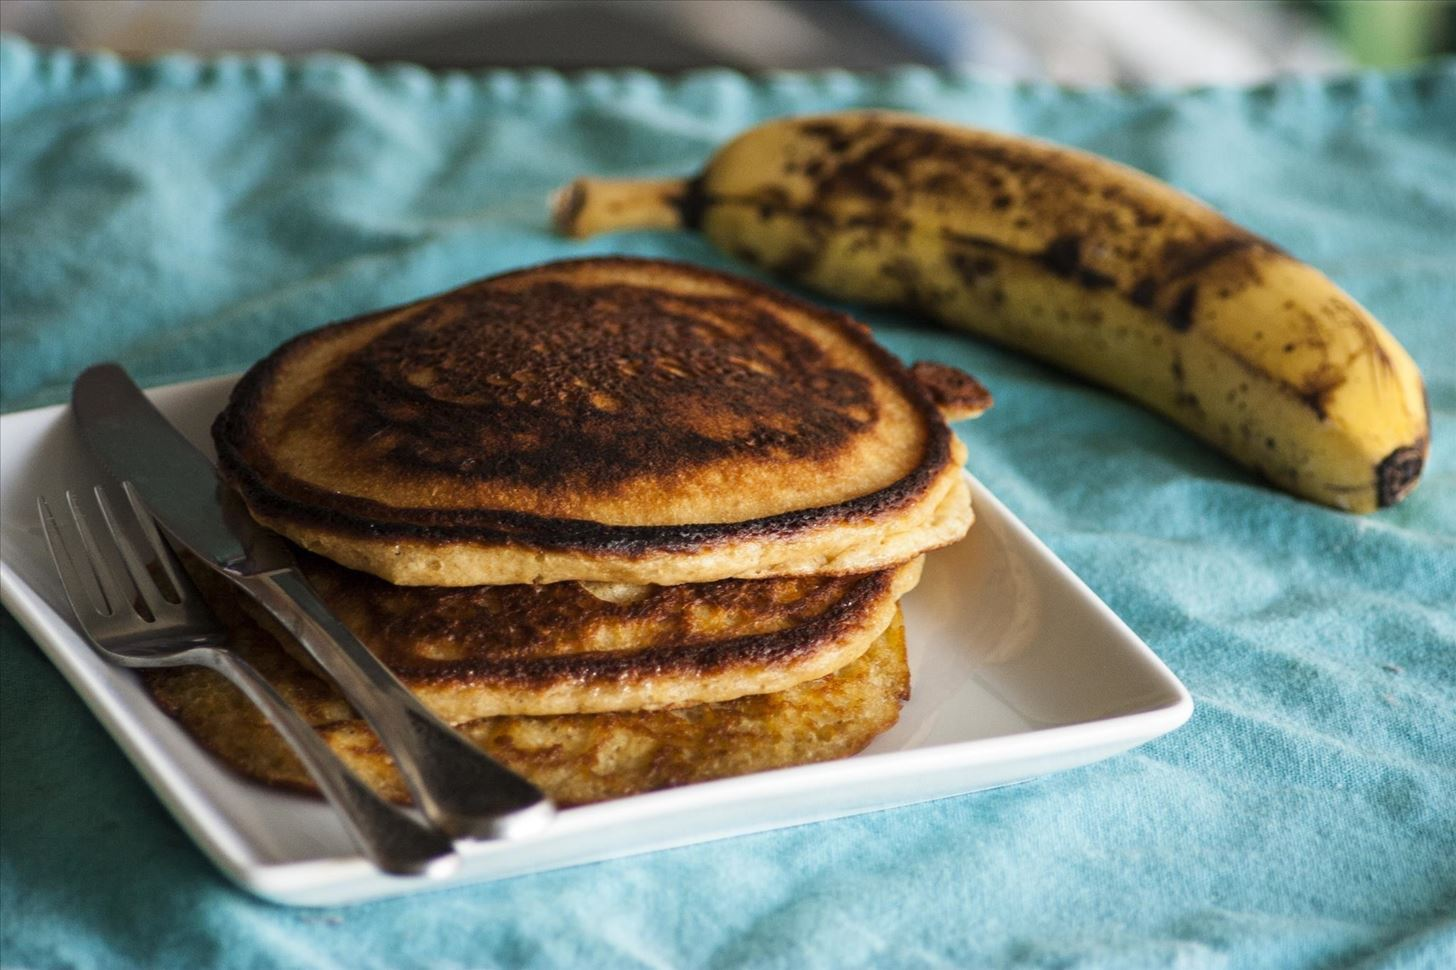 Make Cheaper, Healthier & Tastier Pancakes with This Easy Pancake Mix Recipe